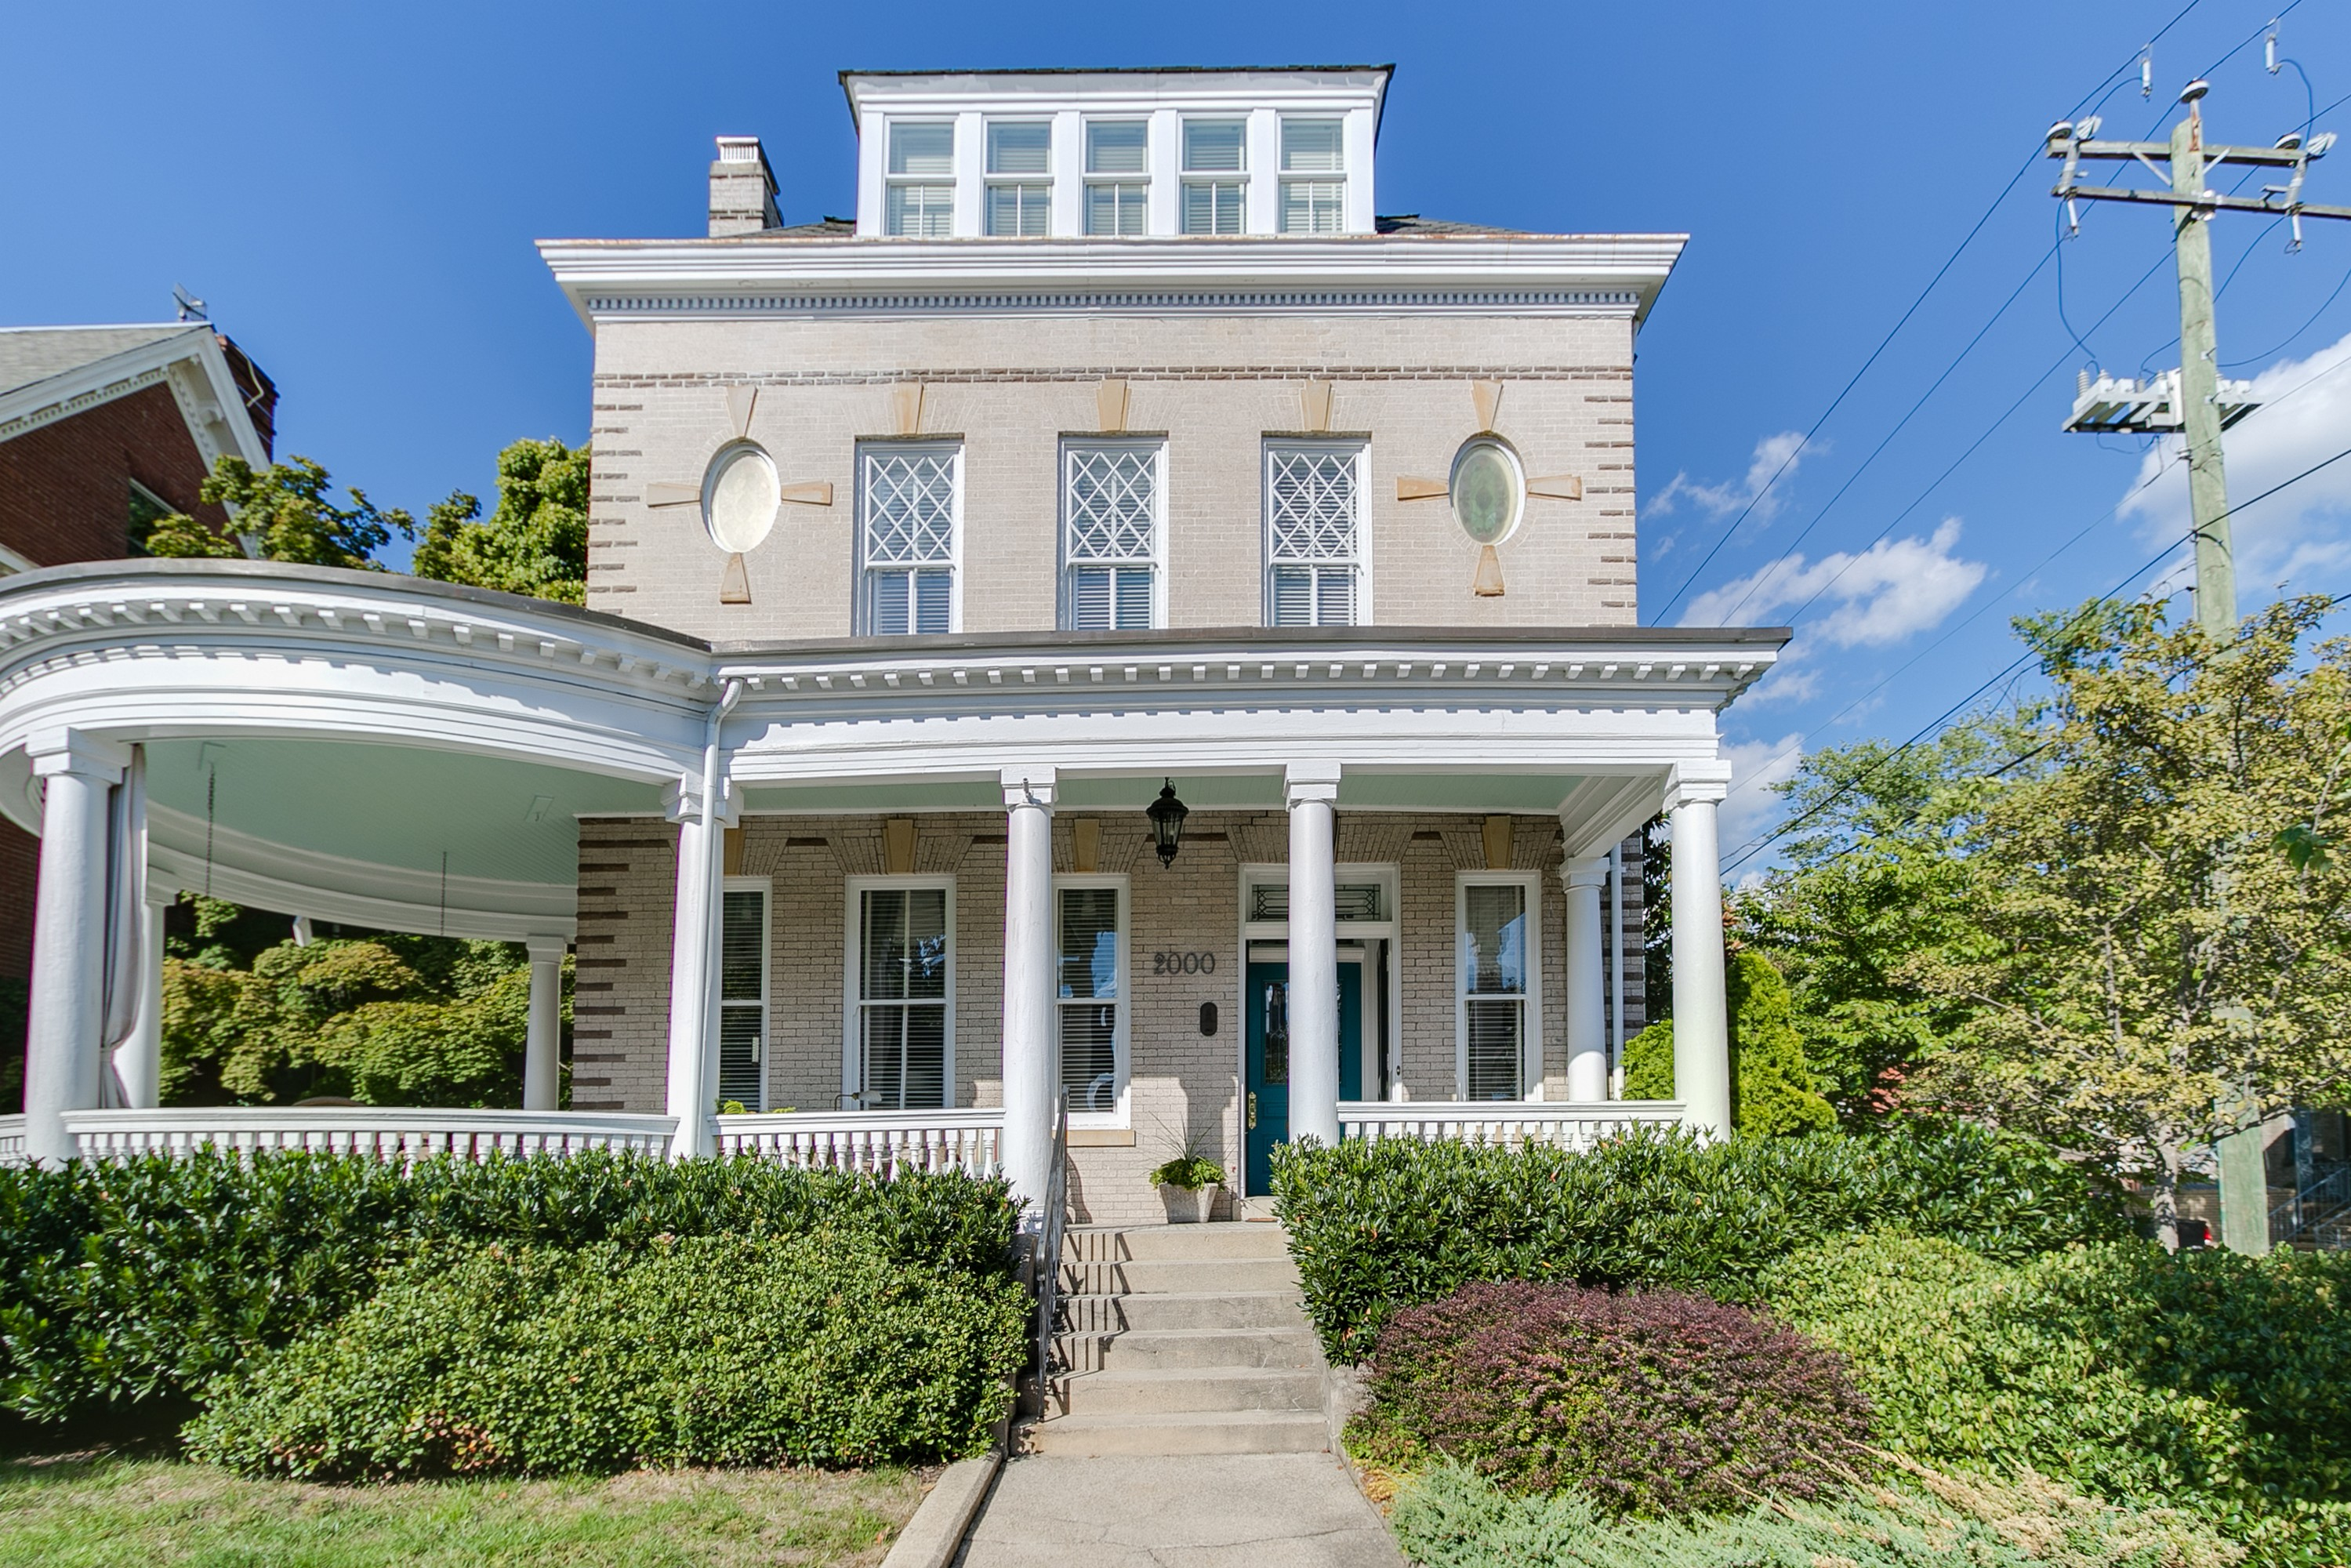 Casa Unifamiliar por un Venta en 2000 Monument Avenue Richmond, Virginia, 23220 Estados Unidos